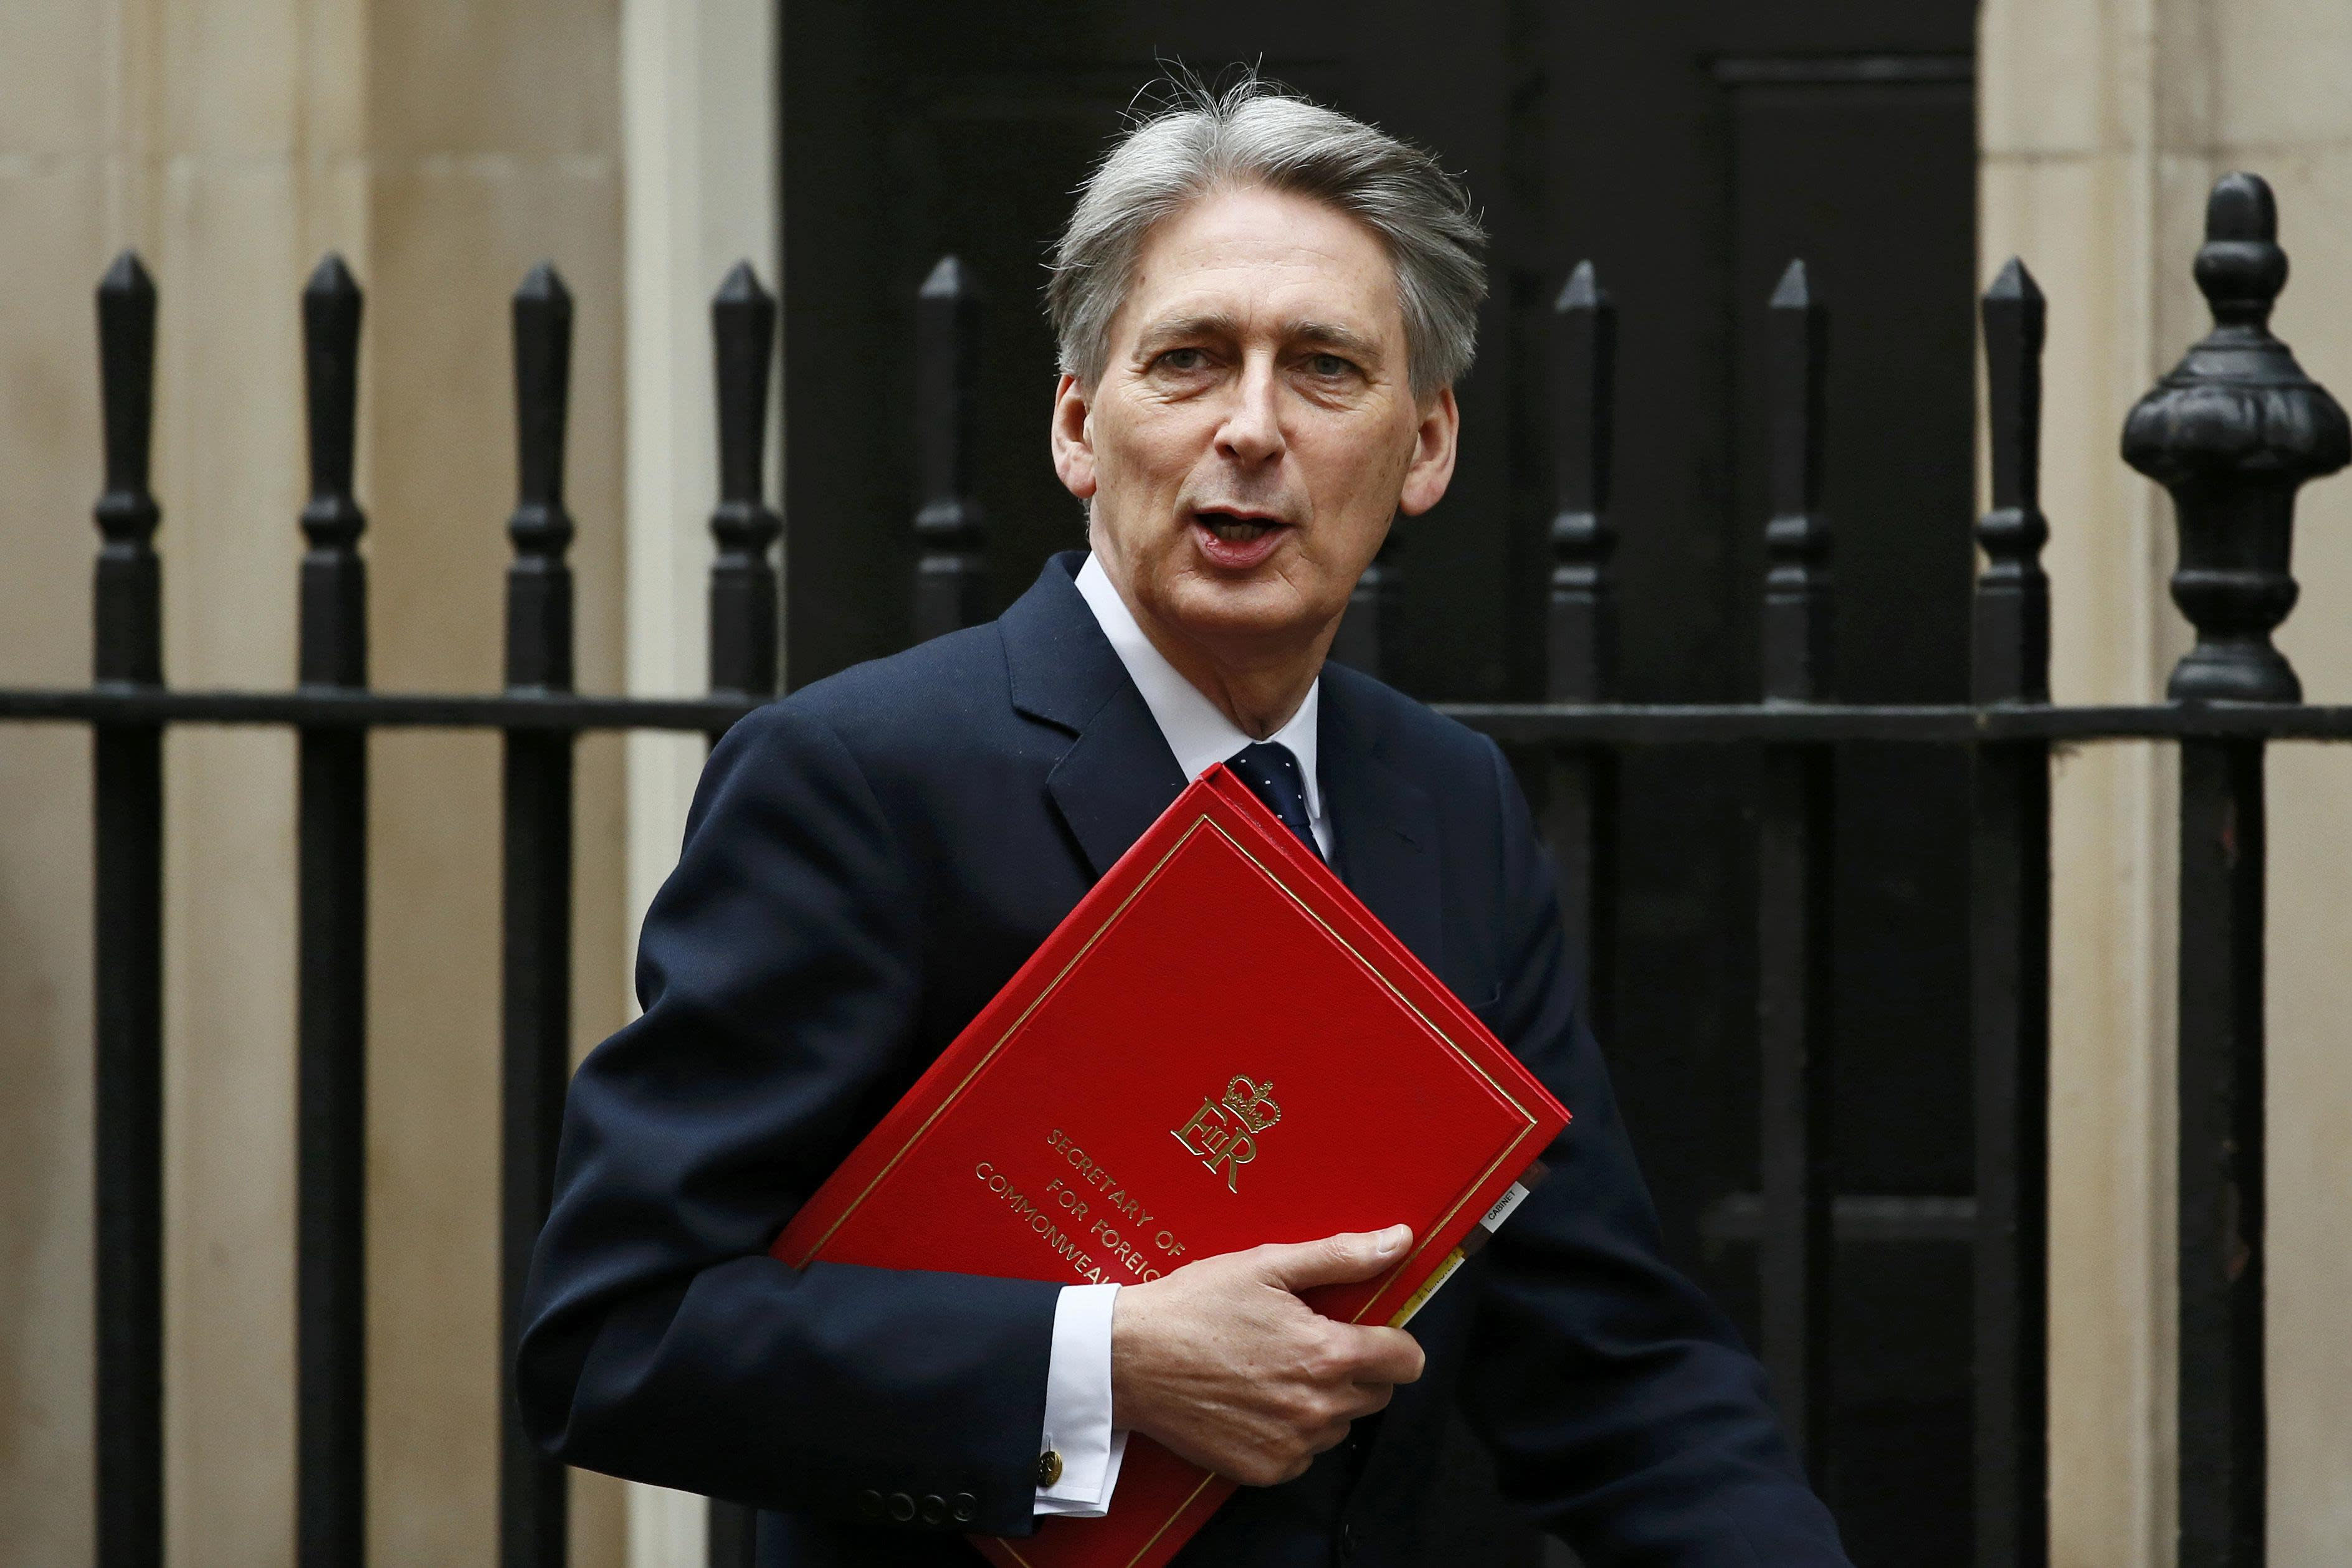 Chancellor urged to raise £2.6bn for Equitable Life victims